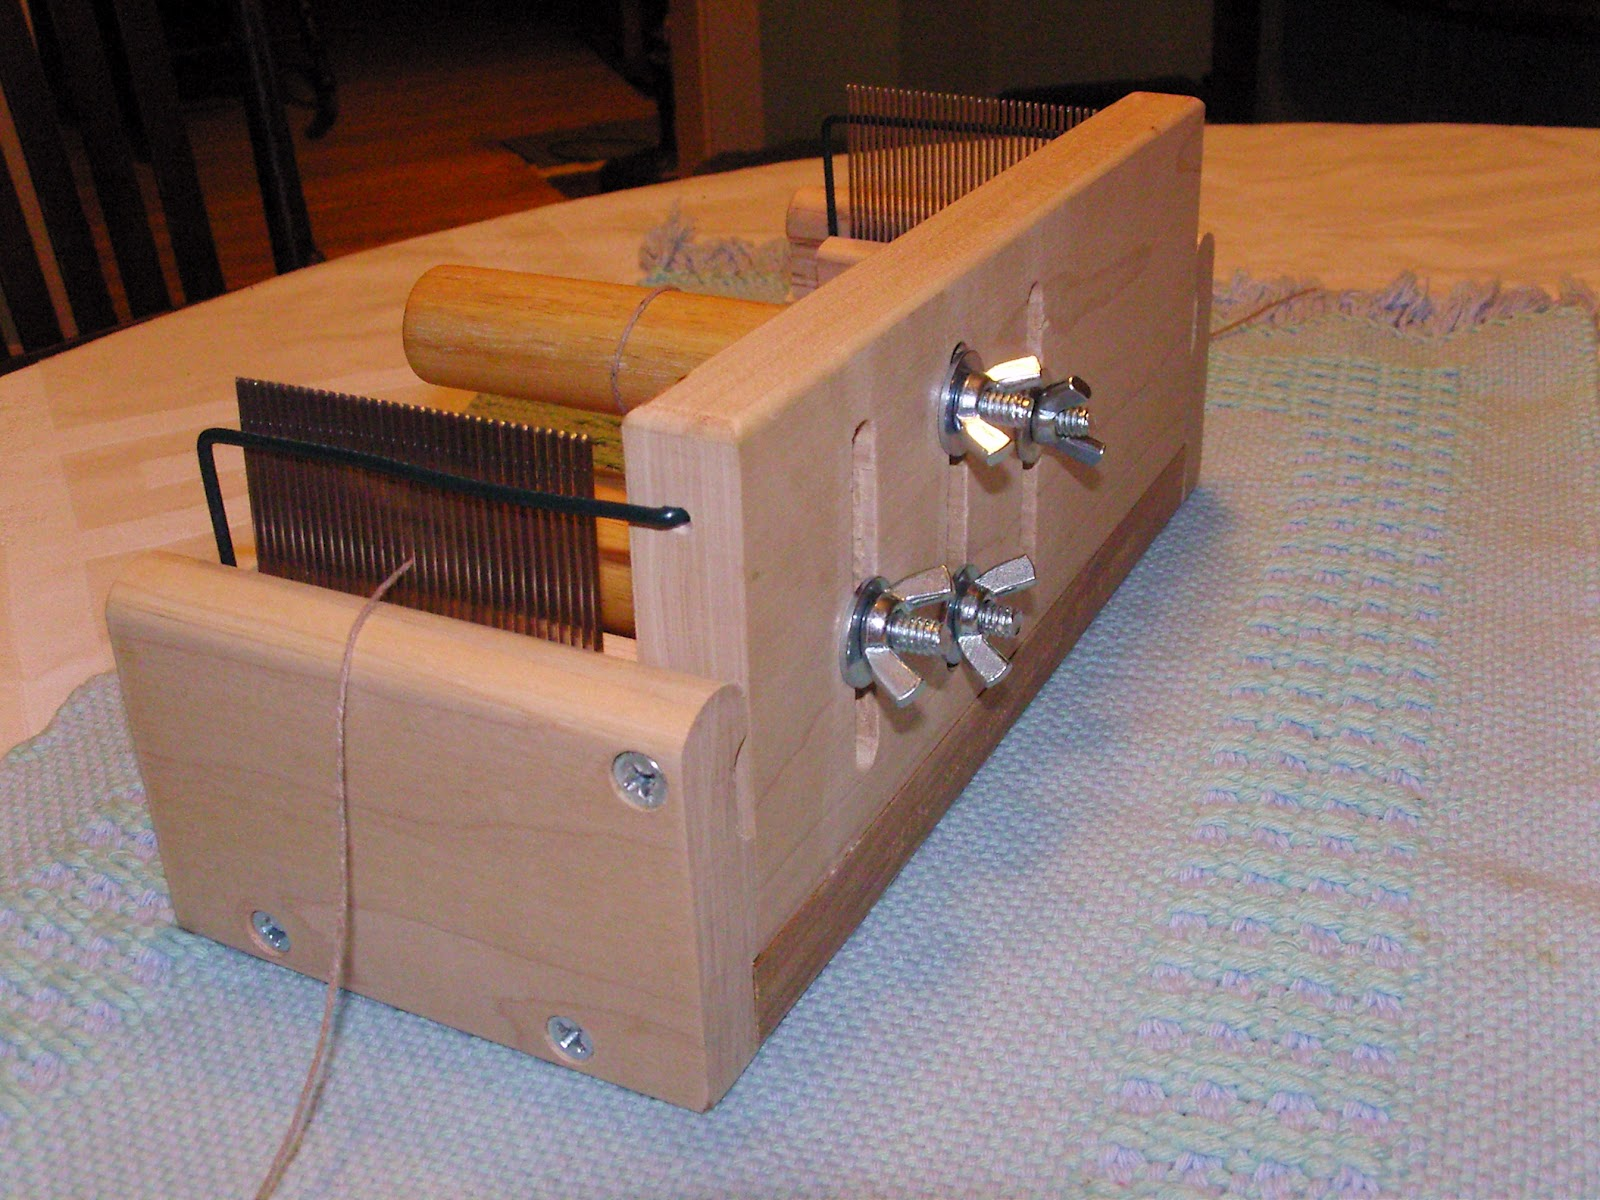 Daisy Hill Weaving Studio Tension Box For Sectional Warping